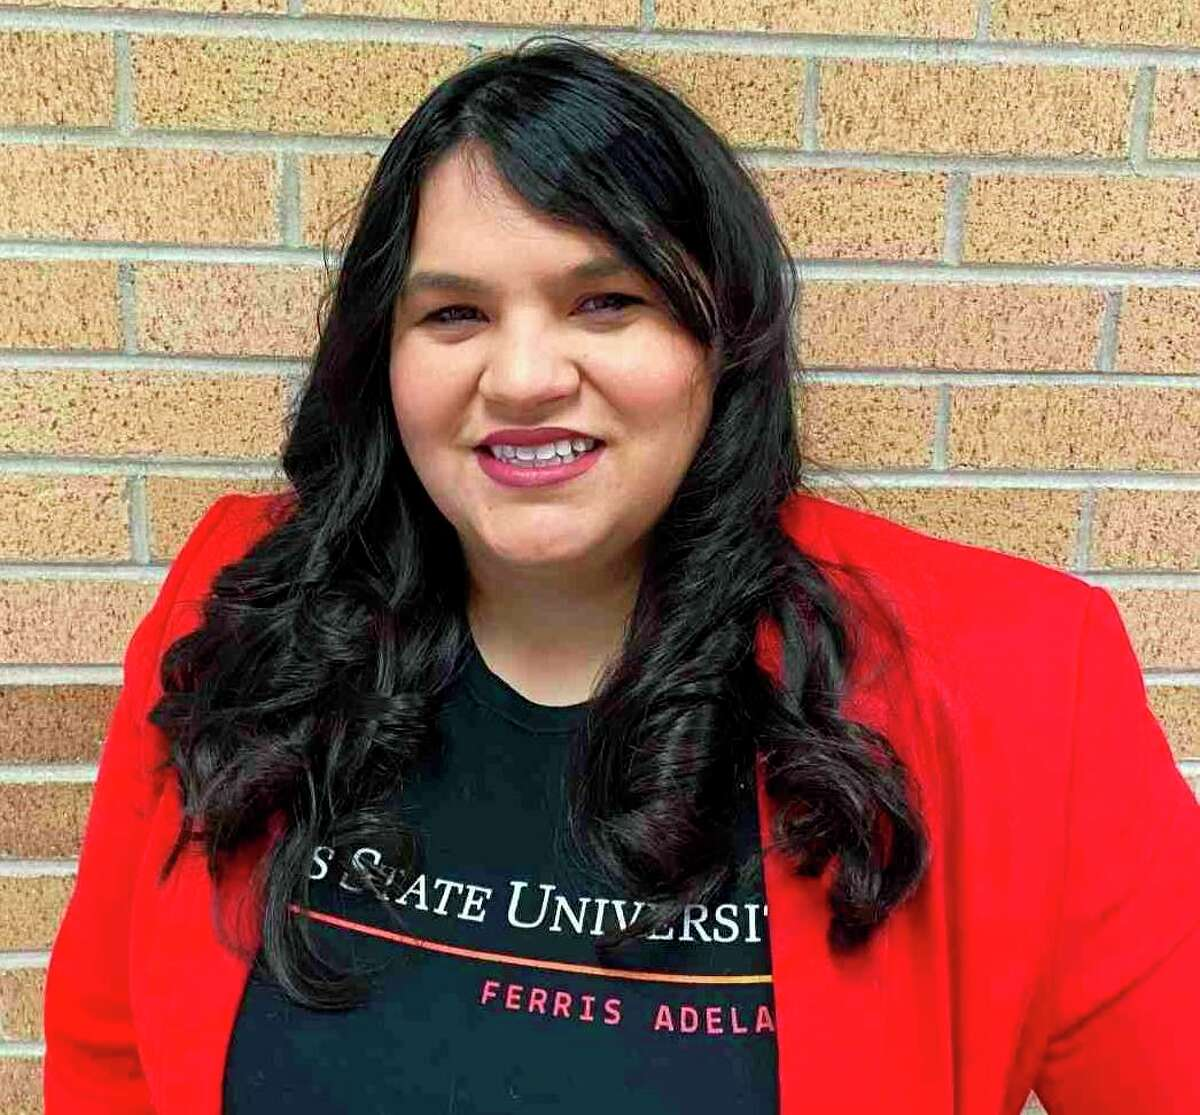 Center for Latin@ Studies Executive Director Kaylee Moreno Burke was the choice of the Ferris Women's Network to receive the 2021 Helen Gillespie Ferris Distinguished Women Leader Award. (Courtesy photo)